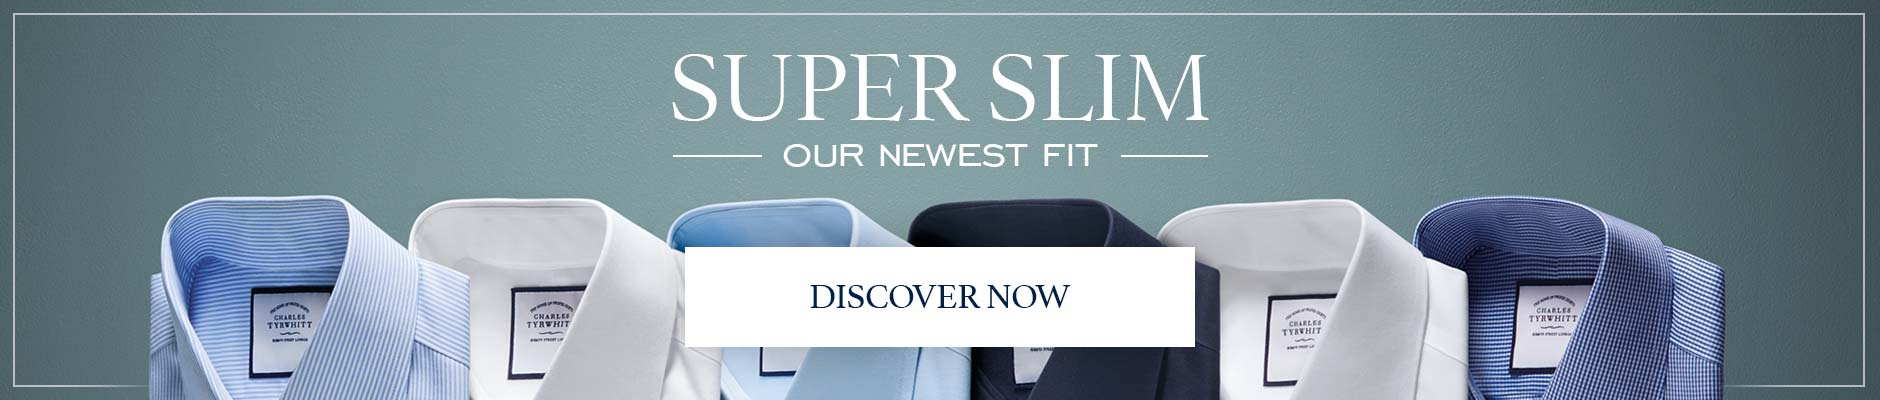 Super slim - our newest fit. Discover now.